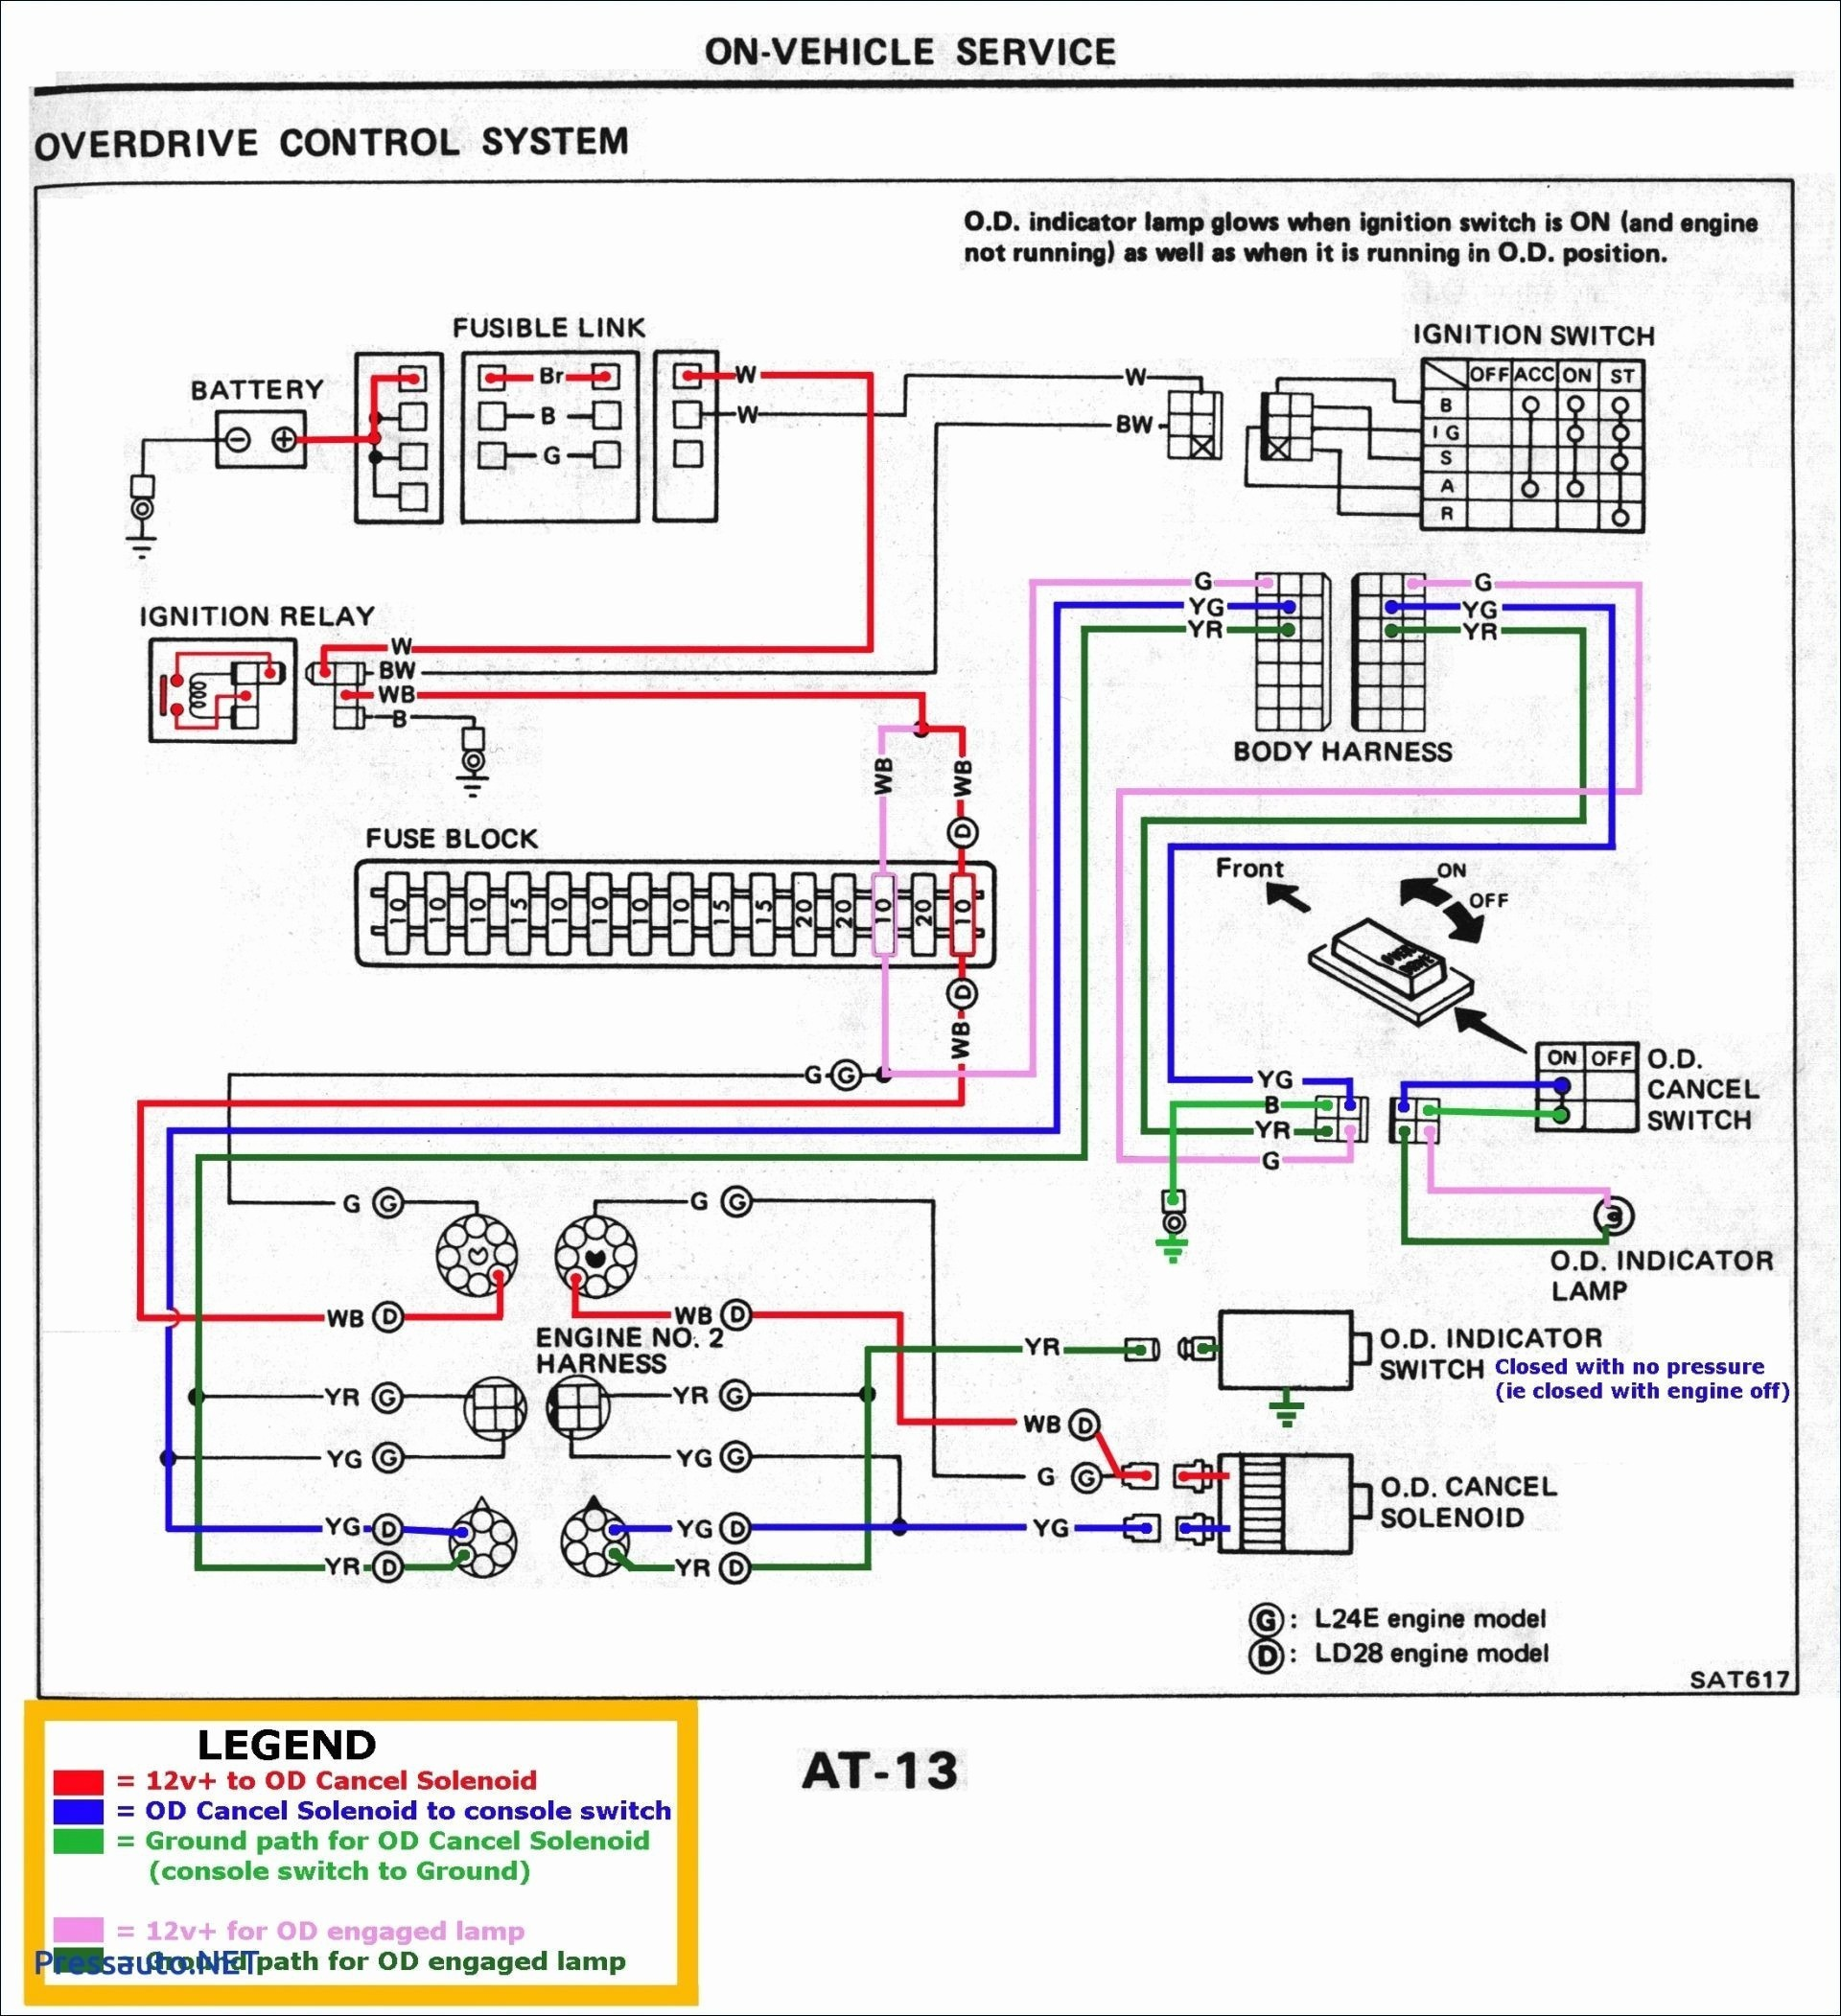 Gas Pump Diagram Gas Furnace Wiring Diagram Valid Best Suburban Gas Furnace Wiring Of Gas Pump Diagram Gas Furnace thermostat Wiring Diagram Collection